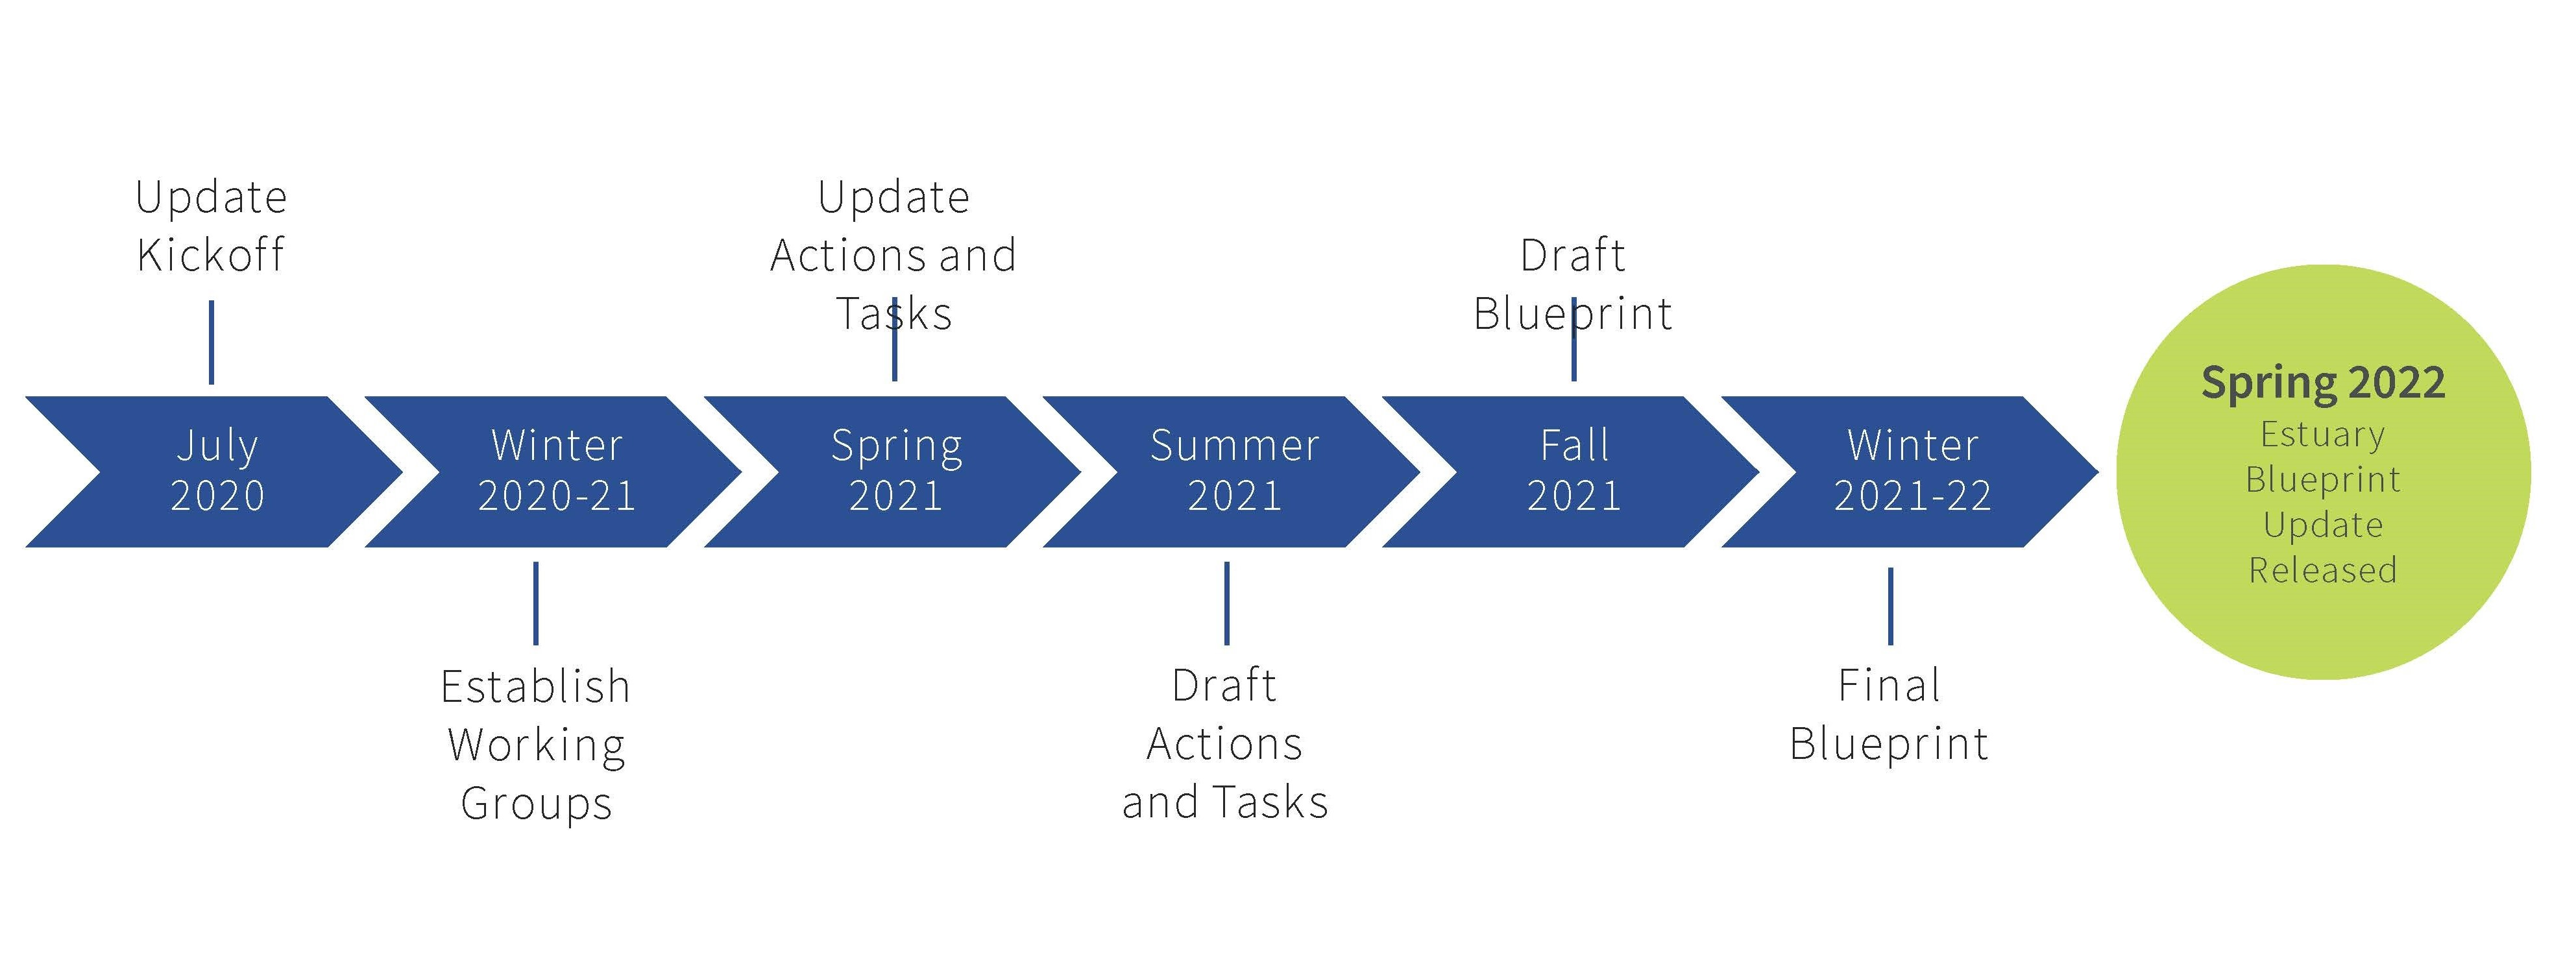 Flowchart showing timeline of the Estuary Blueprint update. Blue arrows describing the update stages point to a green circle on the right side with the text: Spring 2022 Estuary Blueprint Update released